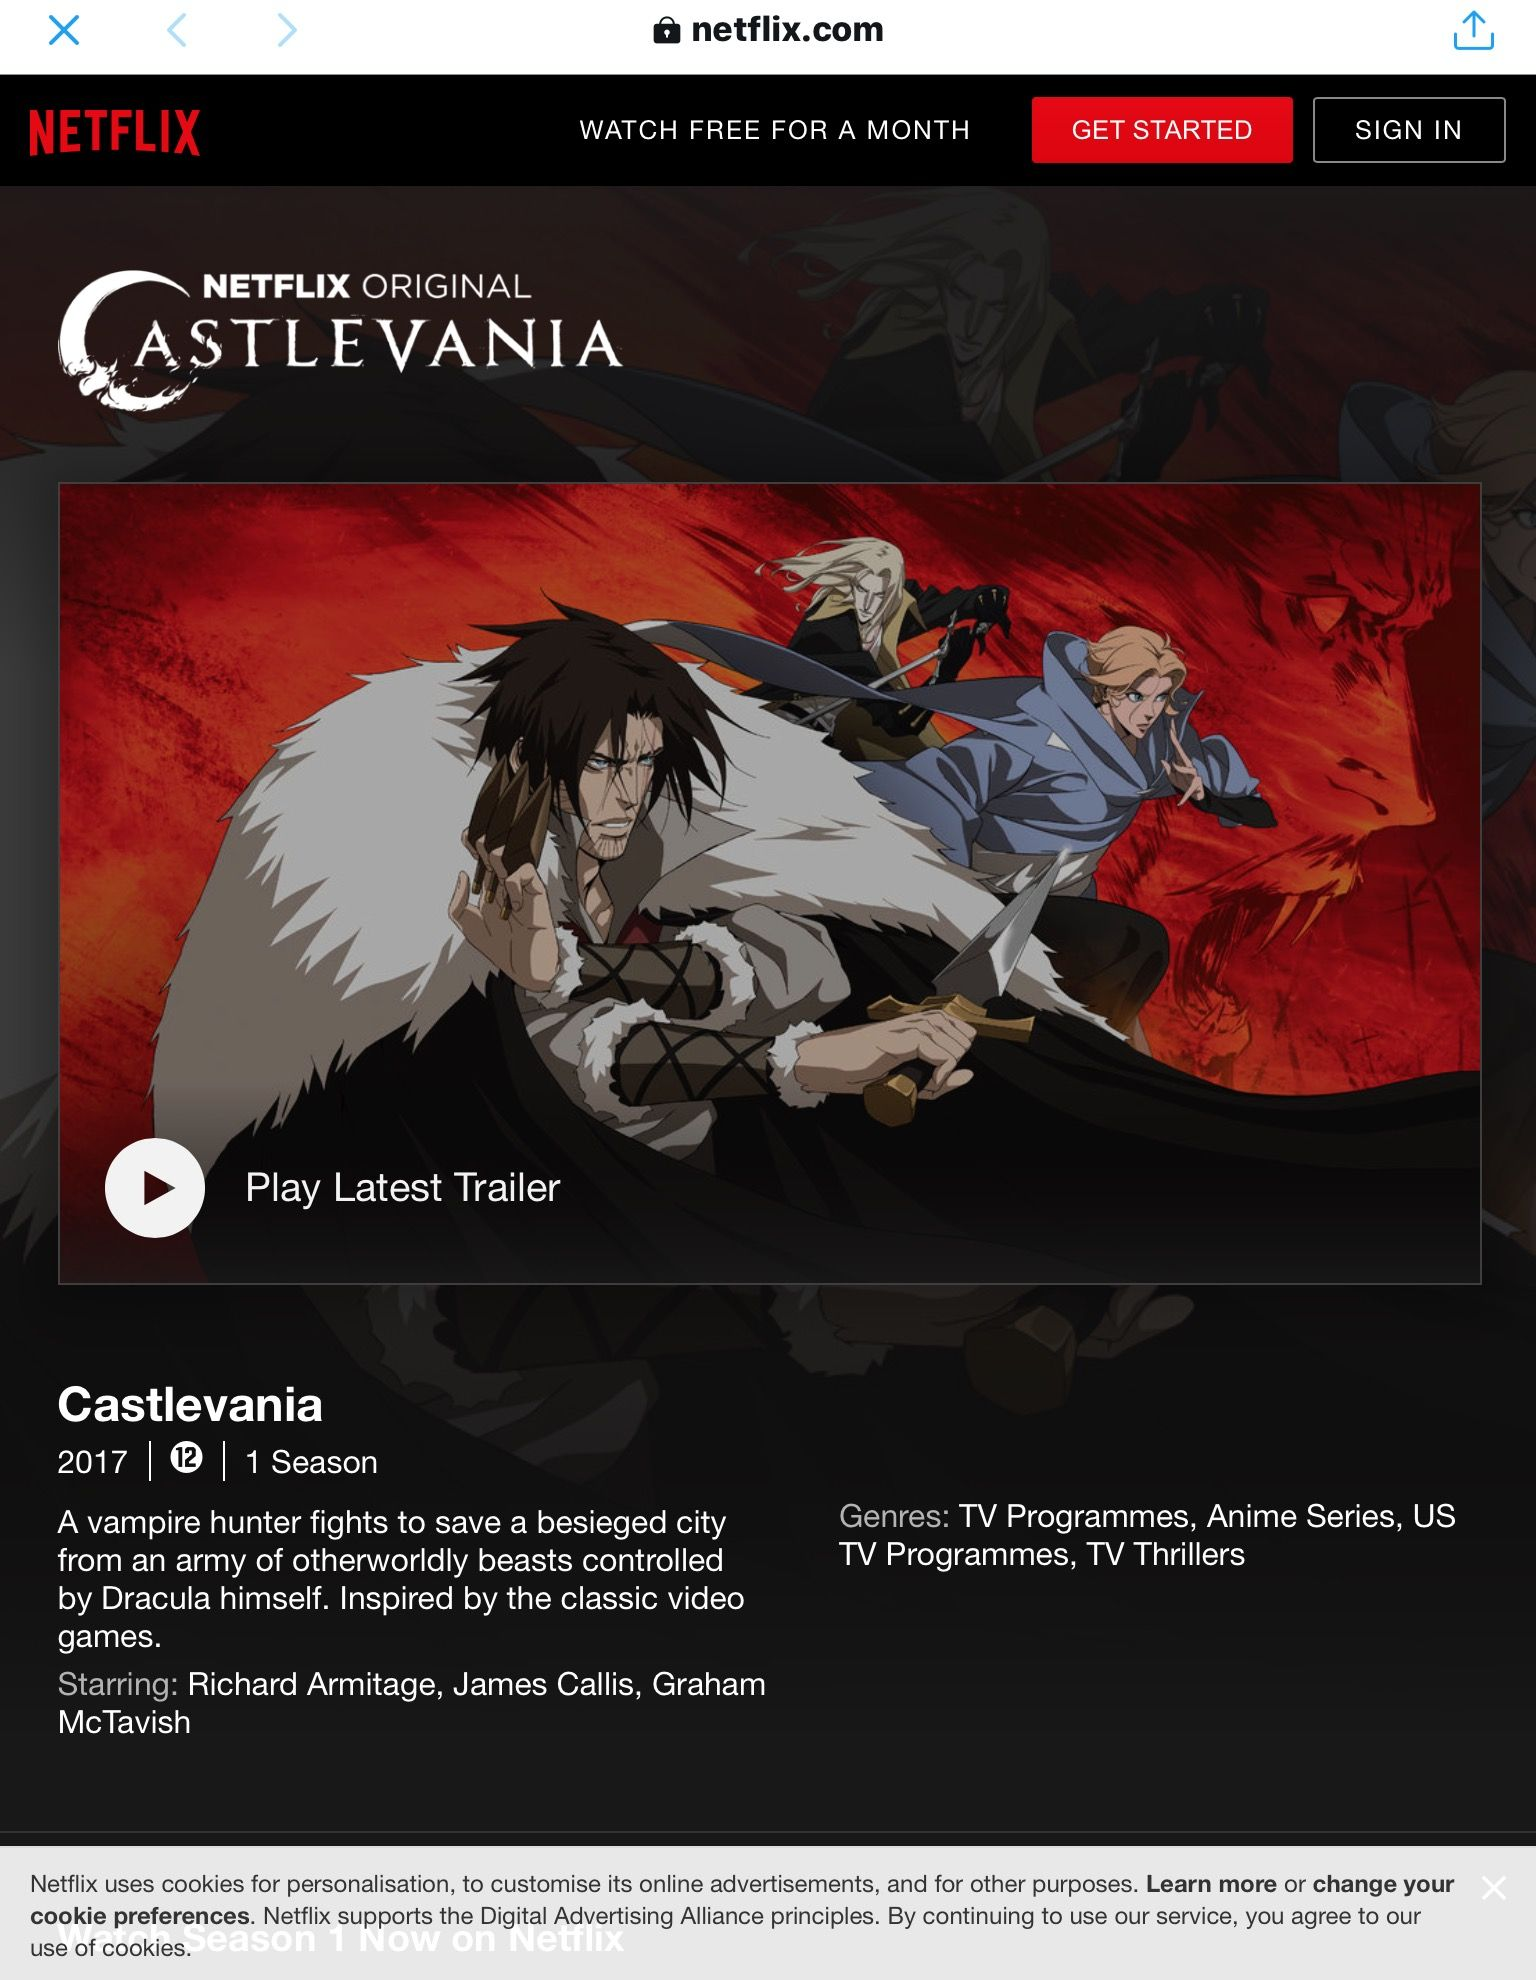 7-7-2017 premiere of Castlevania on Netflix | Castlevania